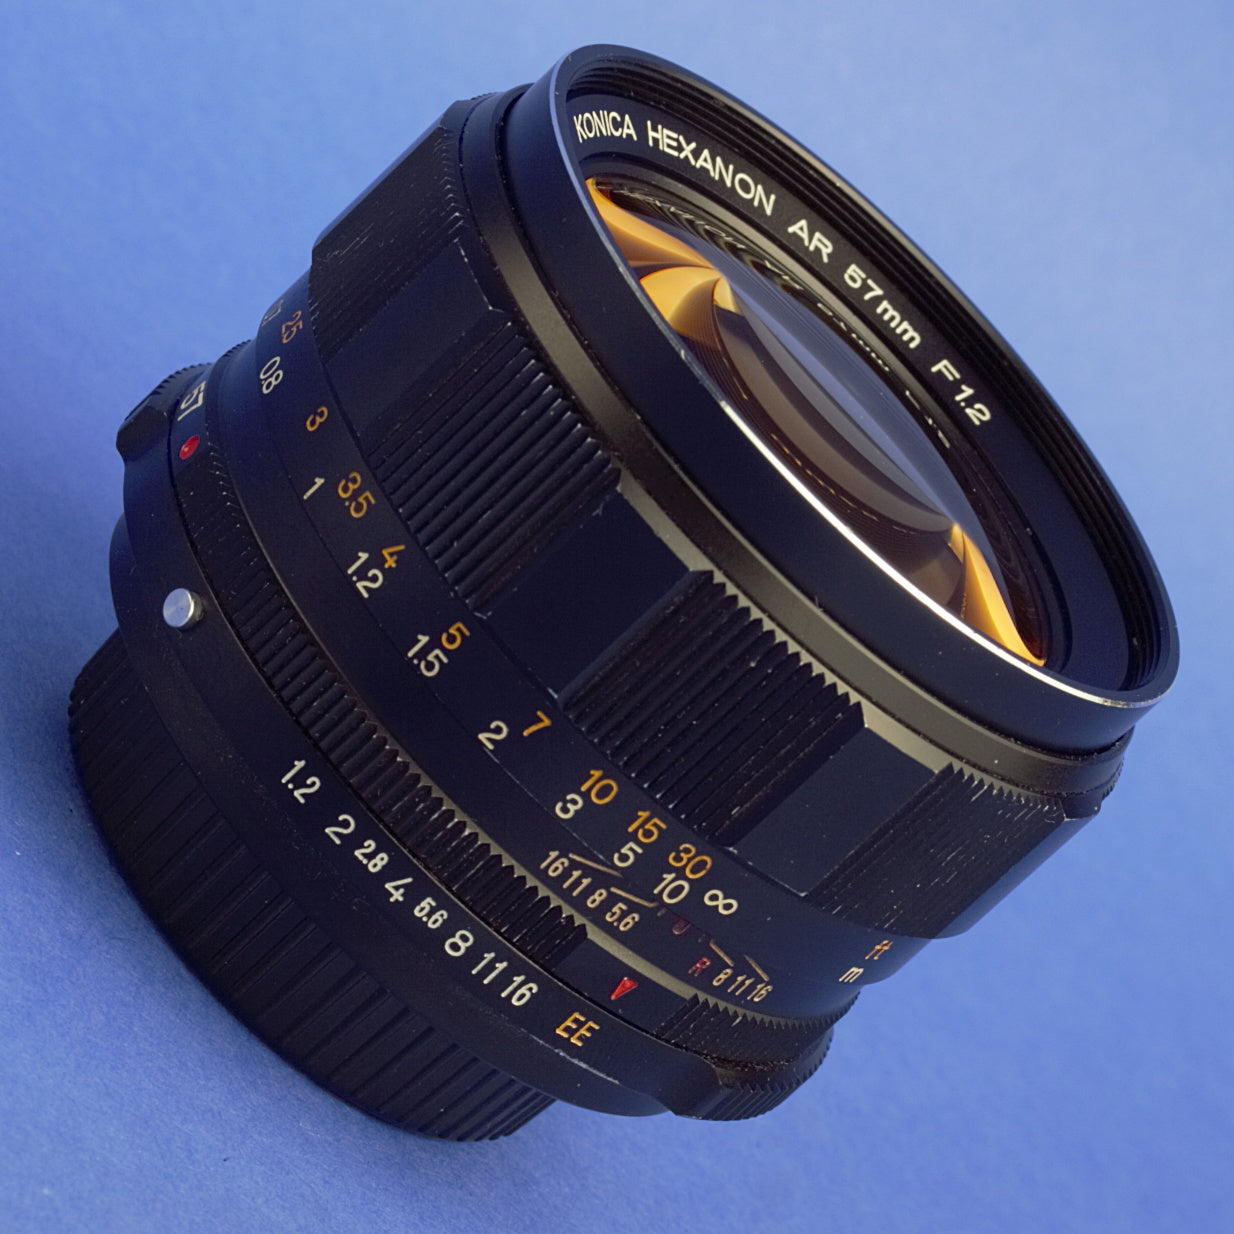 Konica Hexanon 57mm 1.2 EE Thoriated Lens